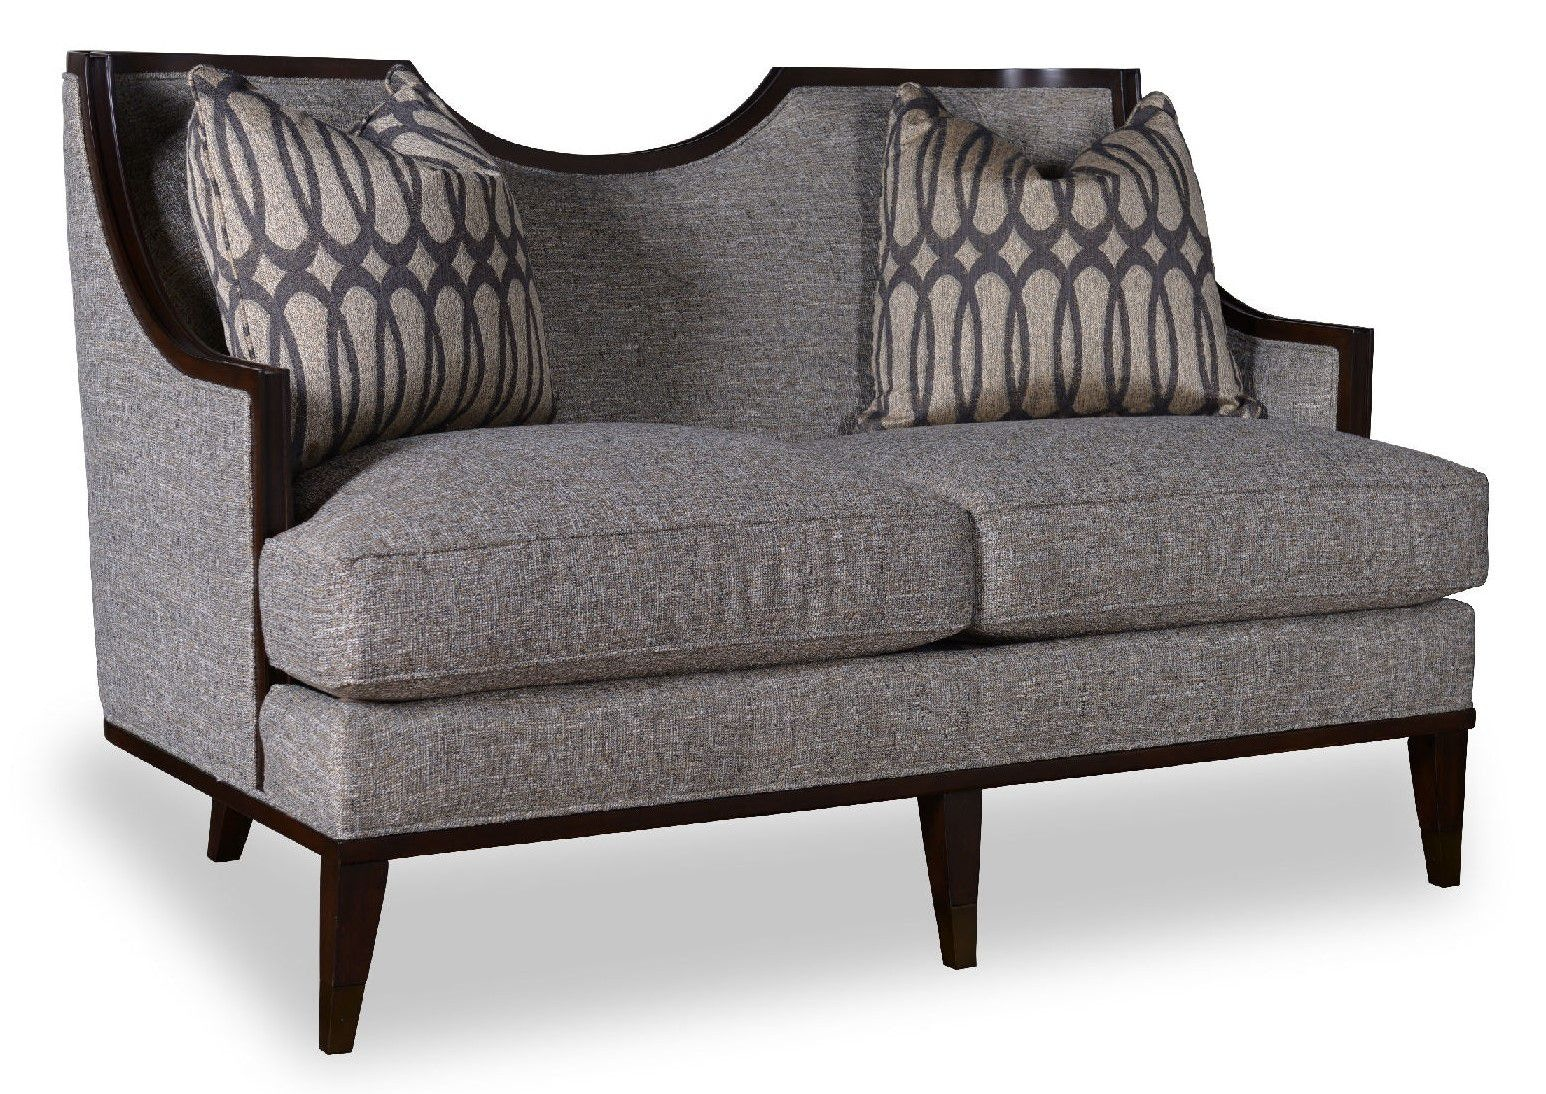 ART Furniture Loveseat 161502 5036AA